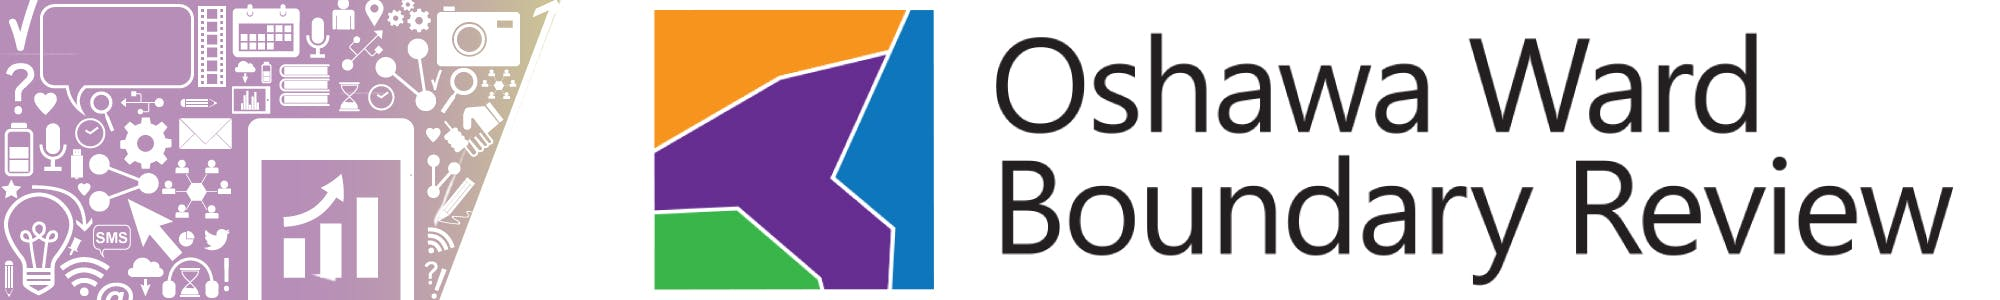 Oshawa Ward Boundary Review logo